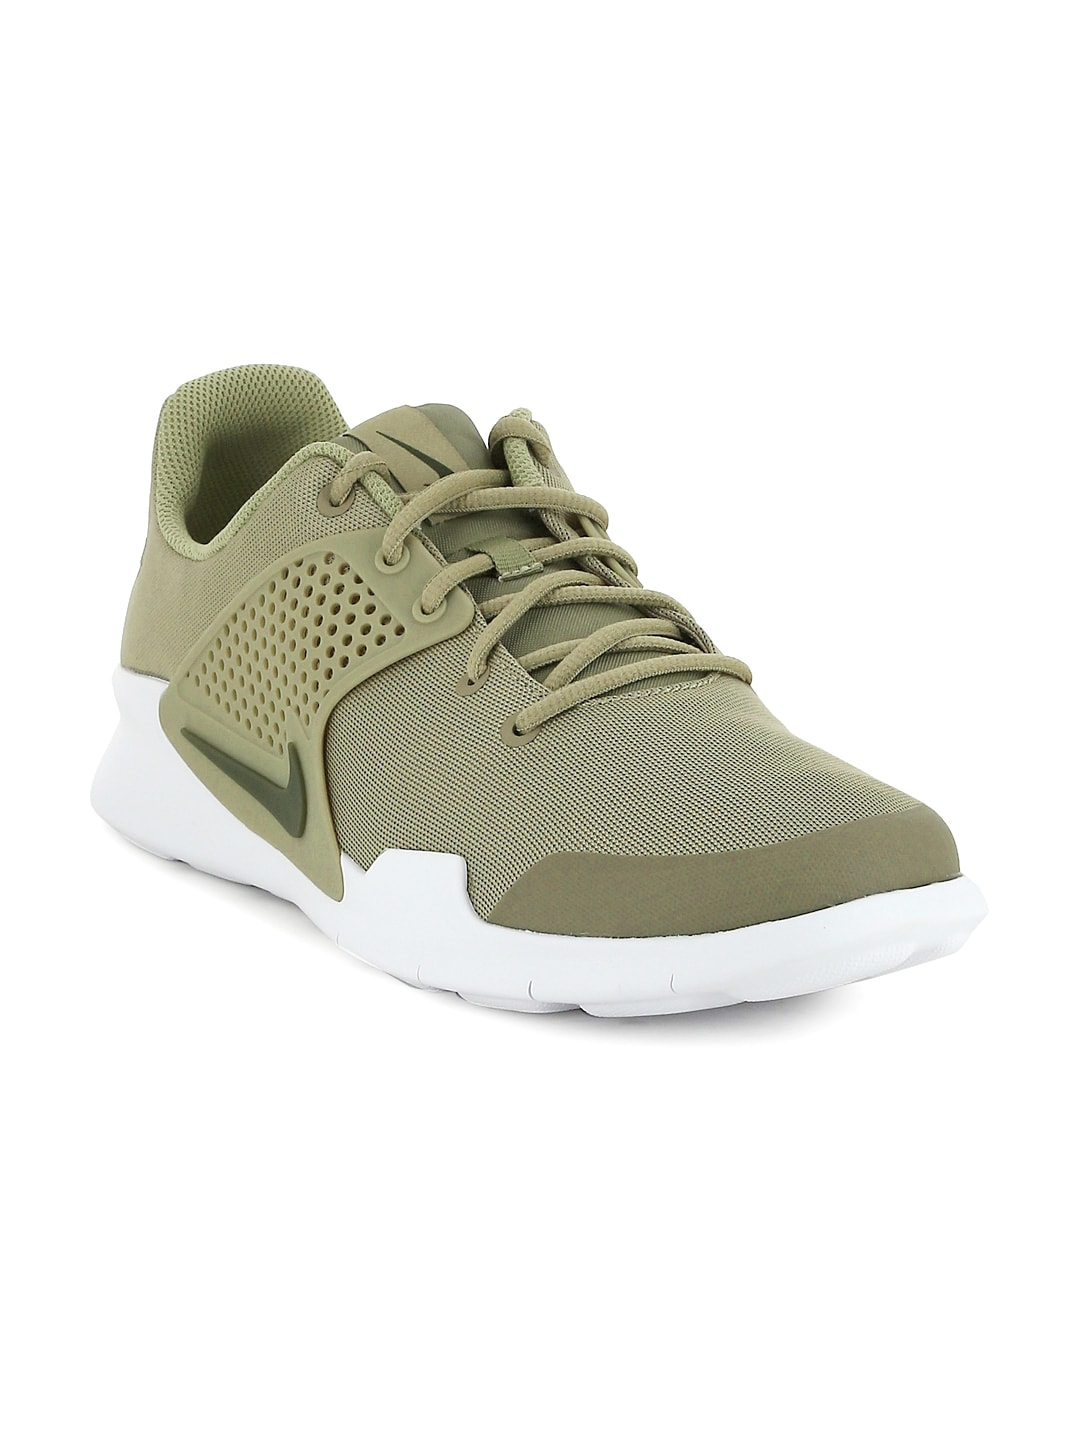 2066d9923271 germany nike men olive green arrowz sneakers de080 8a677